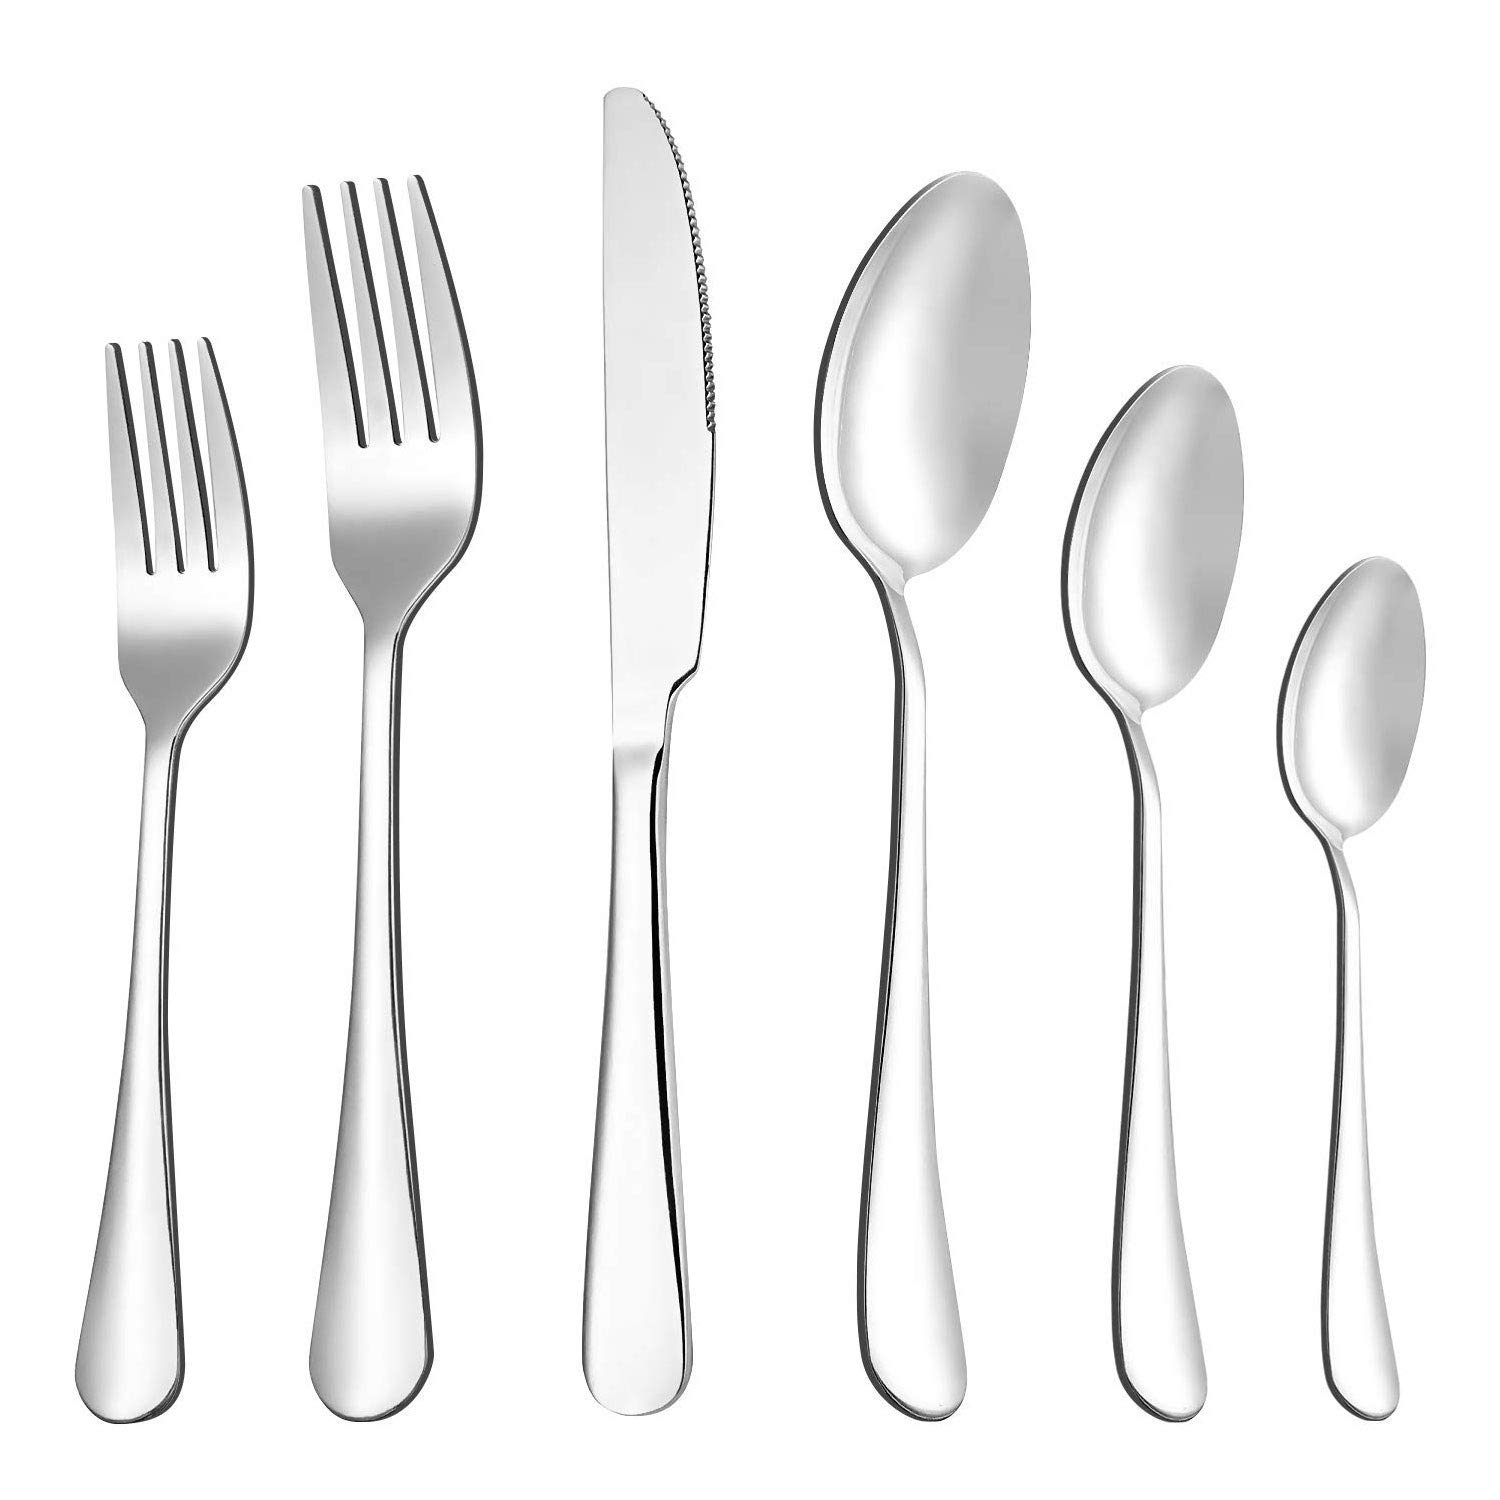 This Flatware Set Is Awesome!